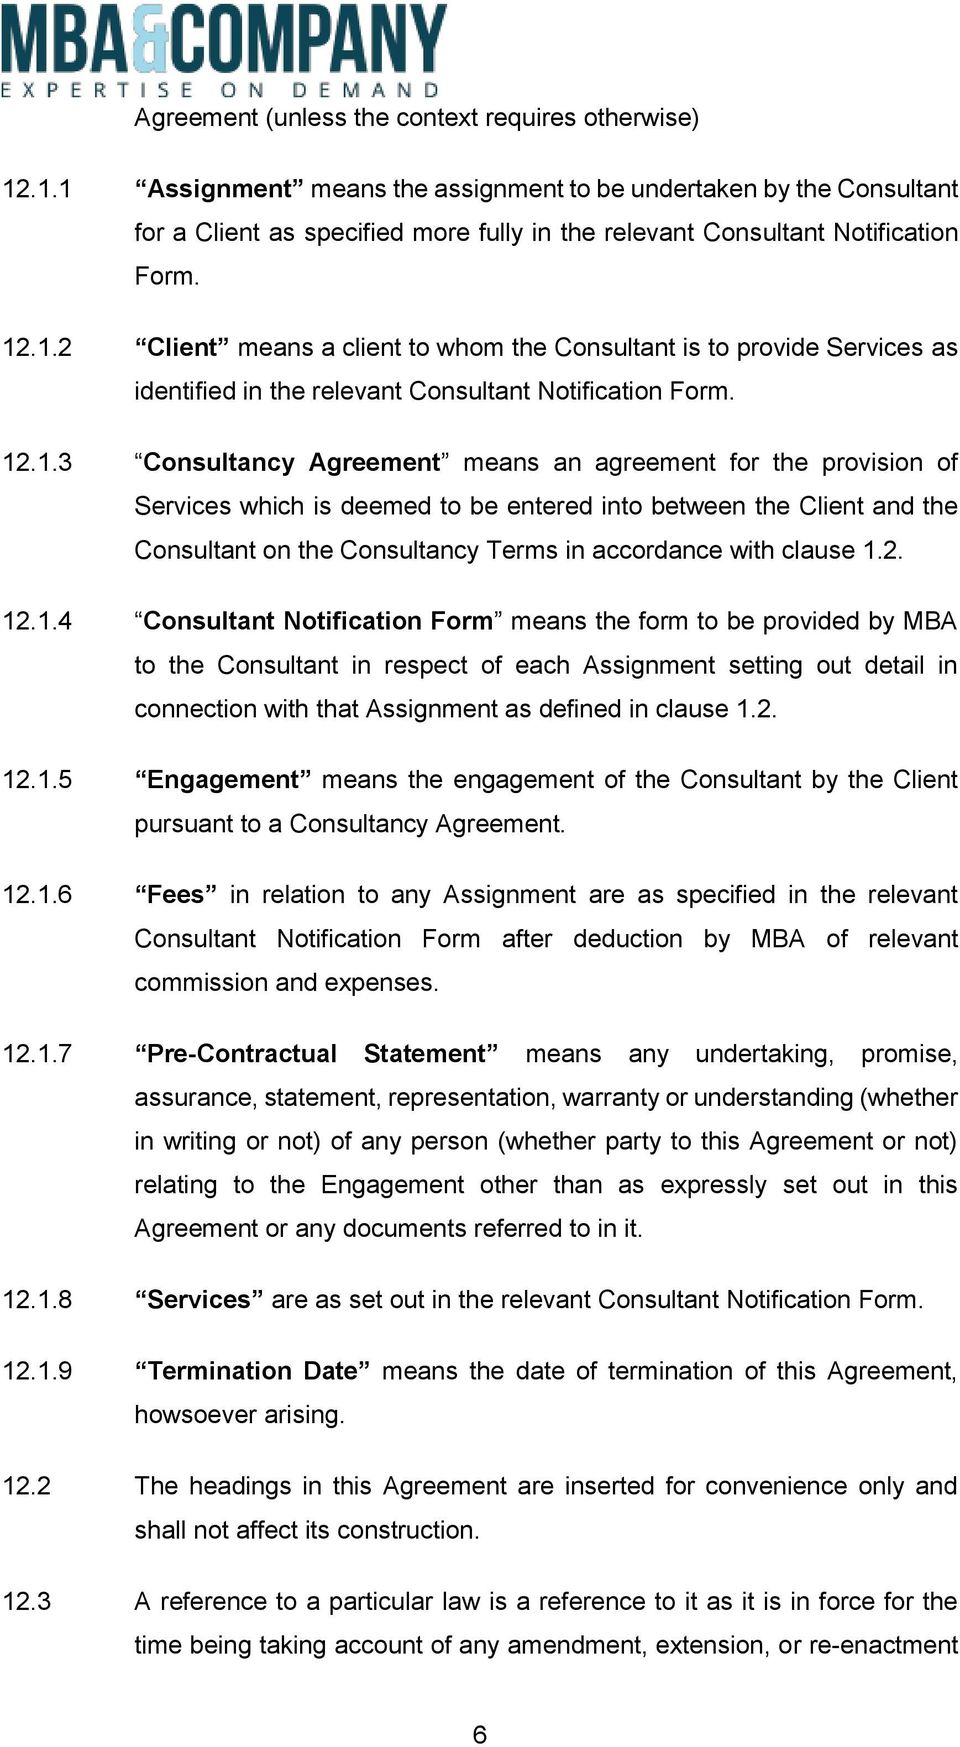 12.1.3 Consultancy Agreement means an agreement for the provision of Services which is deemed to be entered into between the Client and the Consultant on the Consultancy Terms in accordance with